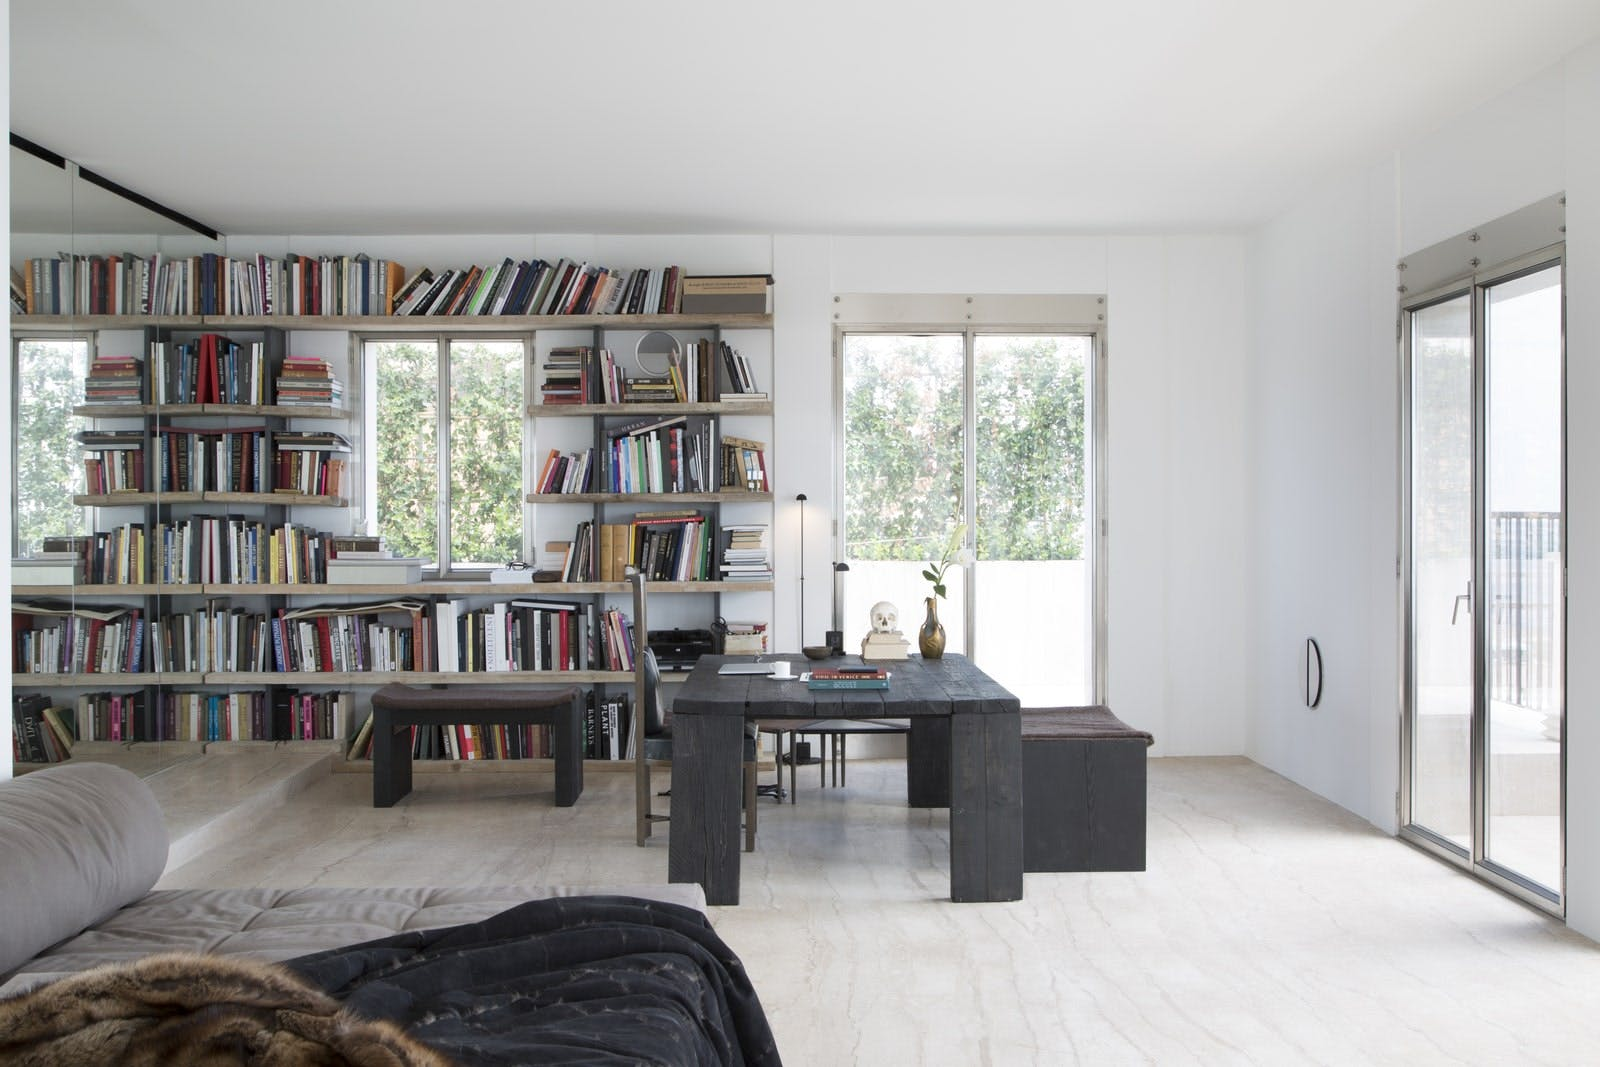 Rick Owens's minimalist house in Venice, Italy - Living room.